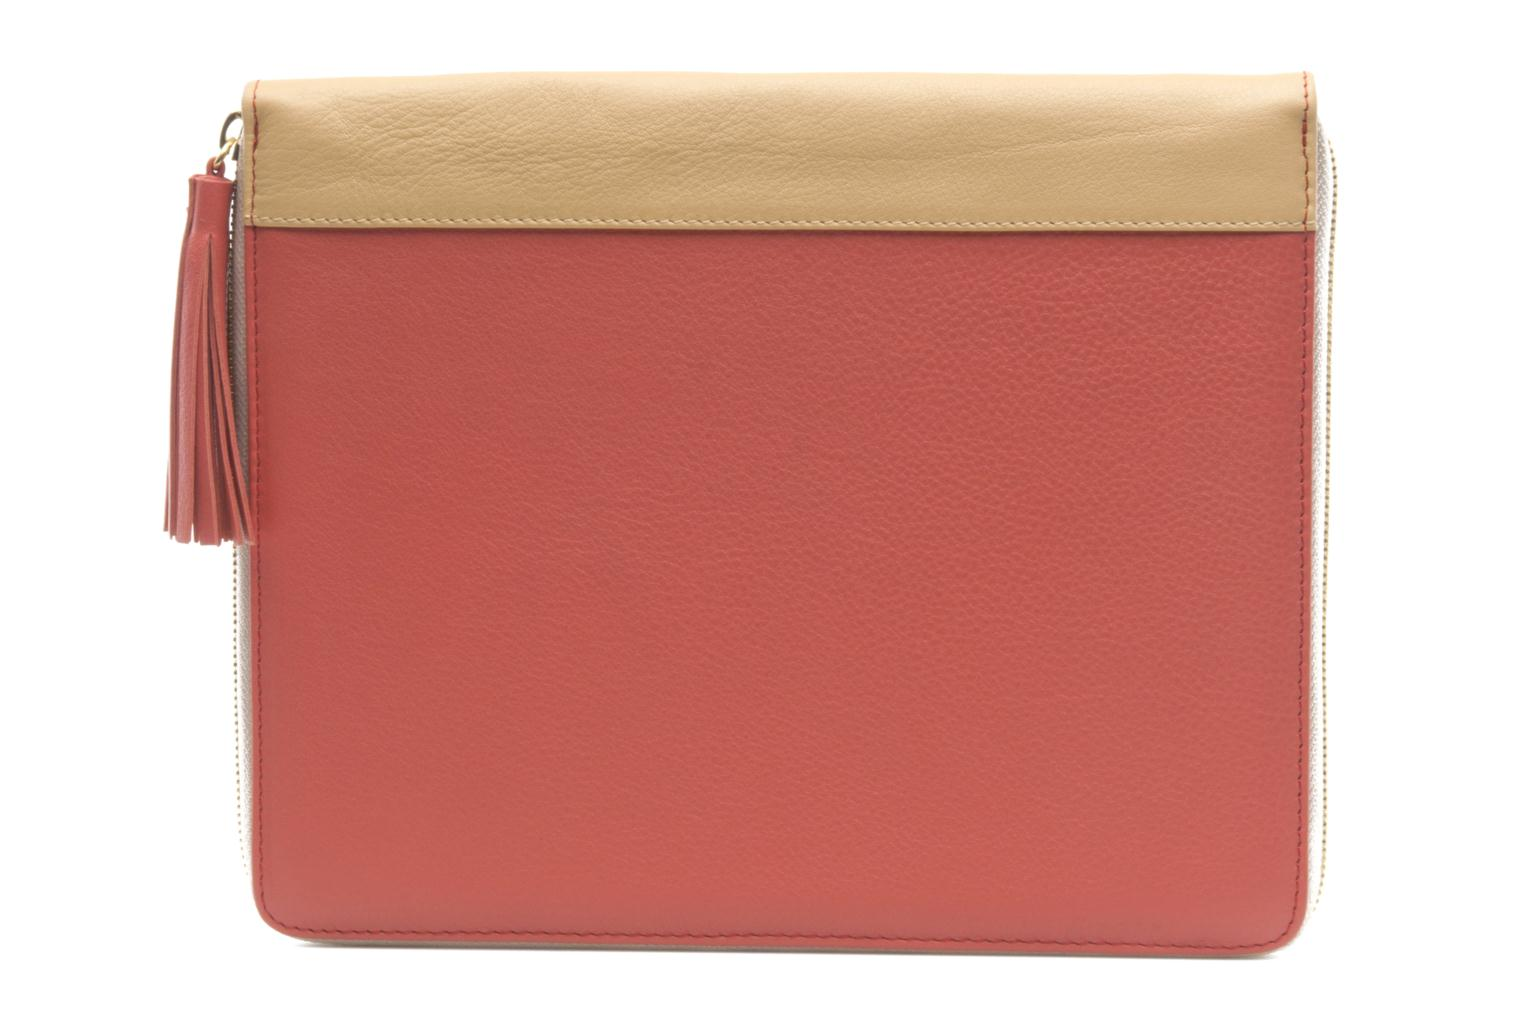 Petite Maroquinerie MySuelly LOU PAD (IPAD) Rose vue face